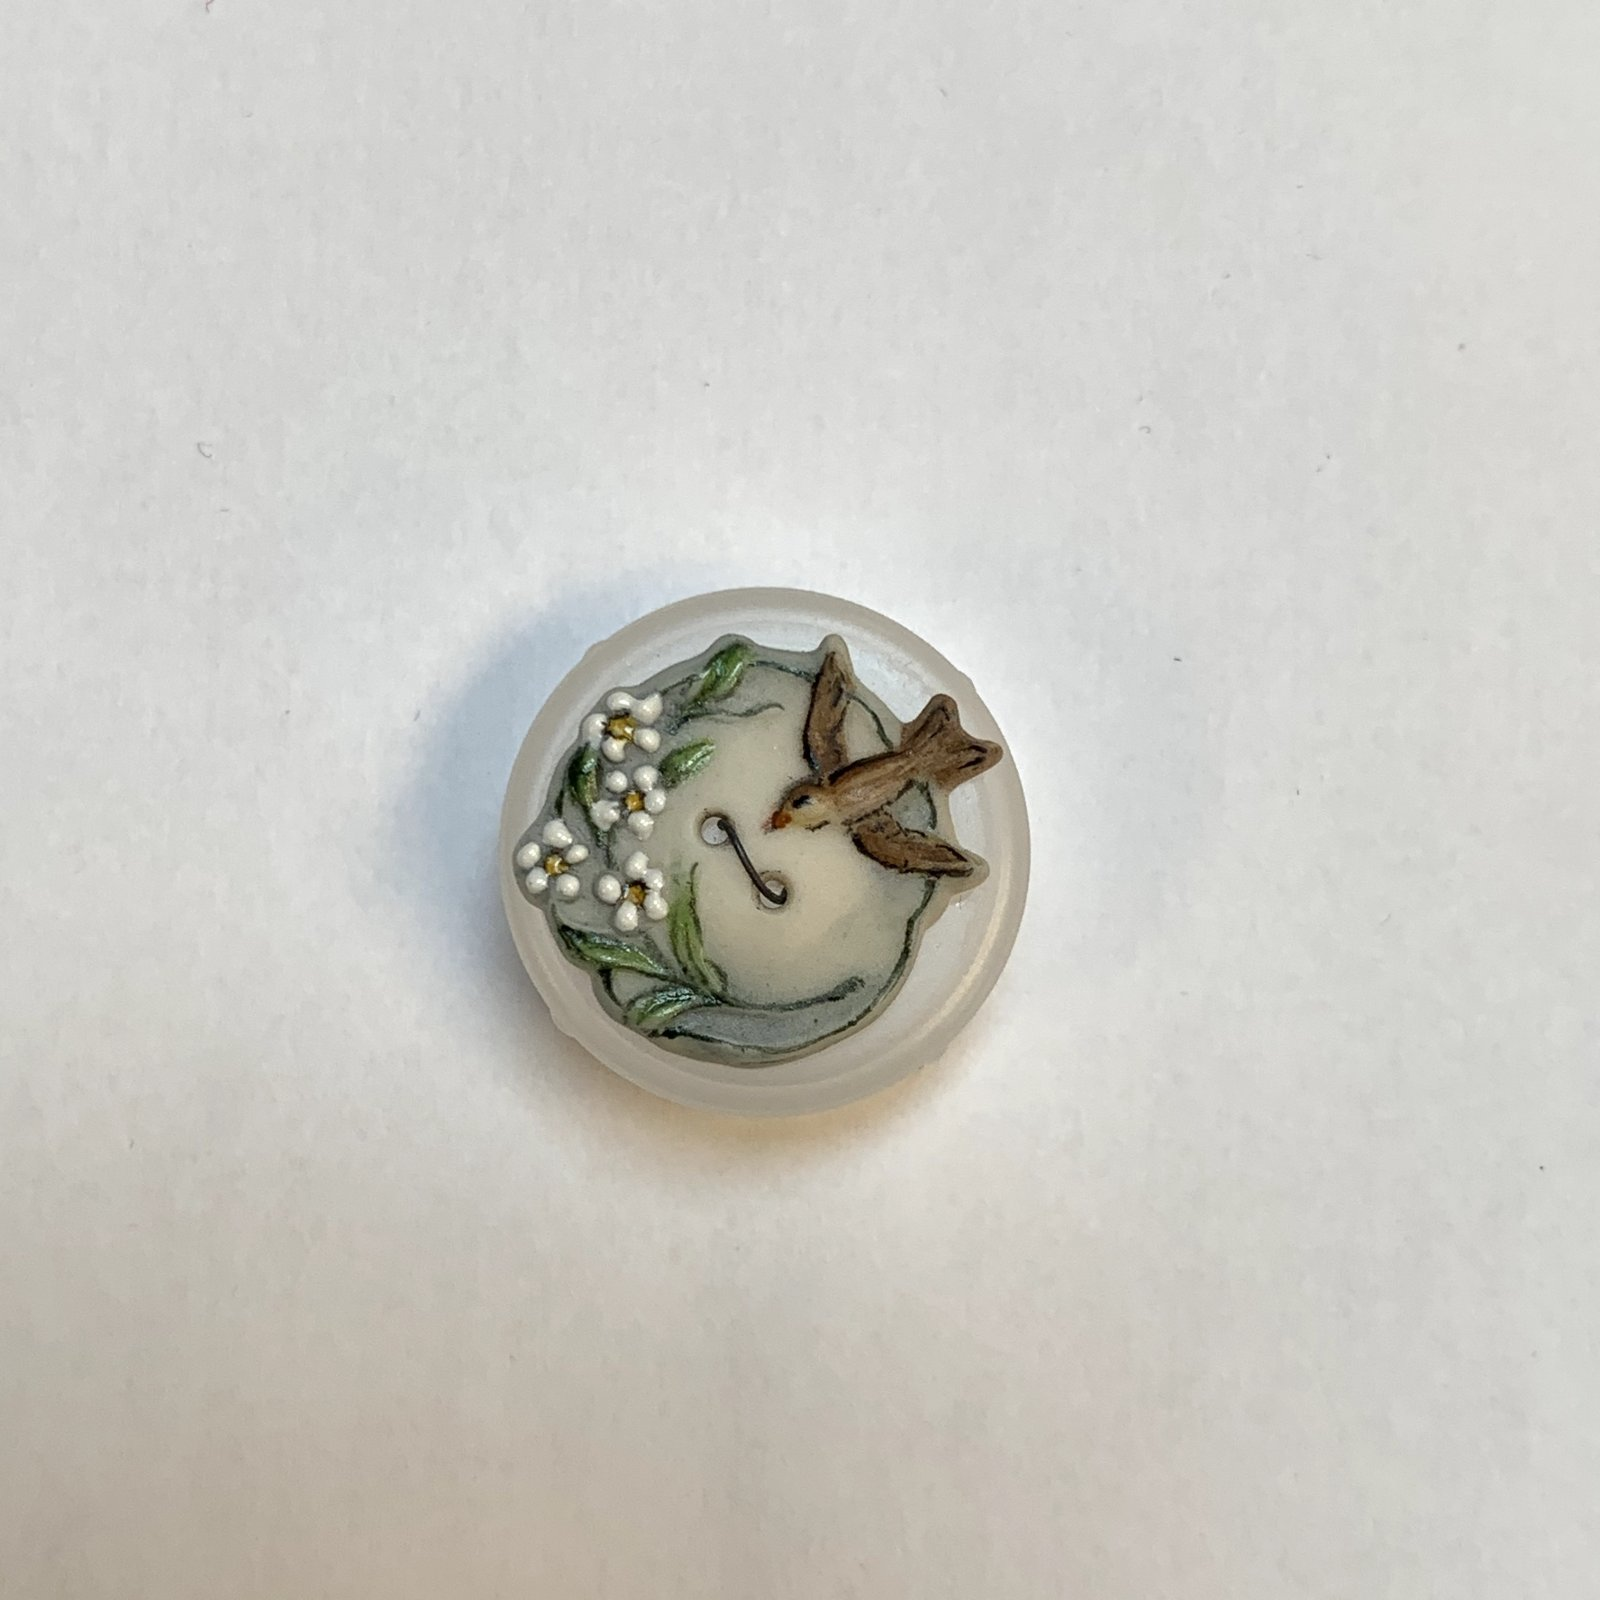 BIrd and Boom Porcelain Button 1 Inch XB-855